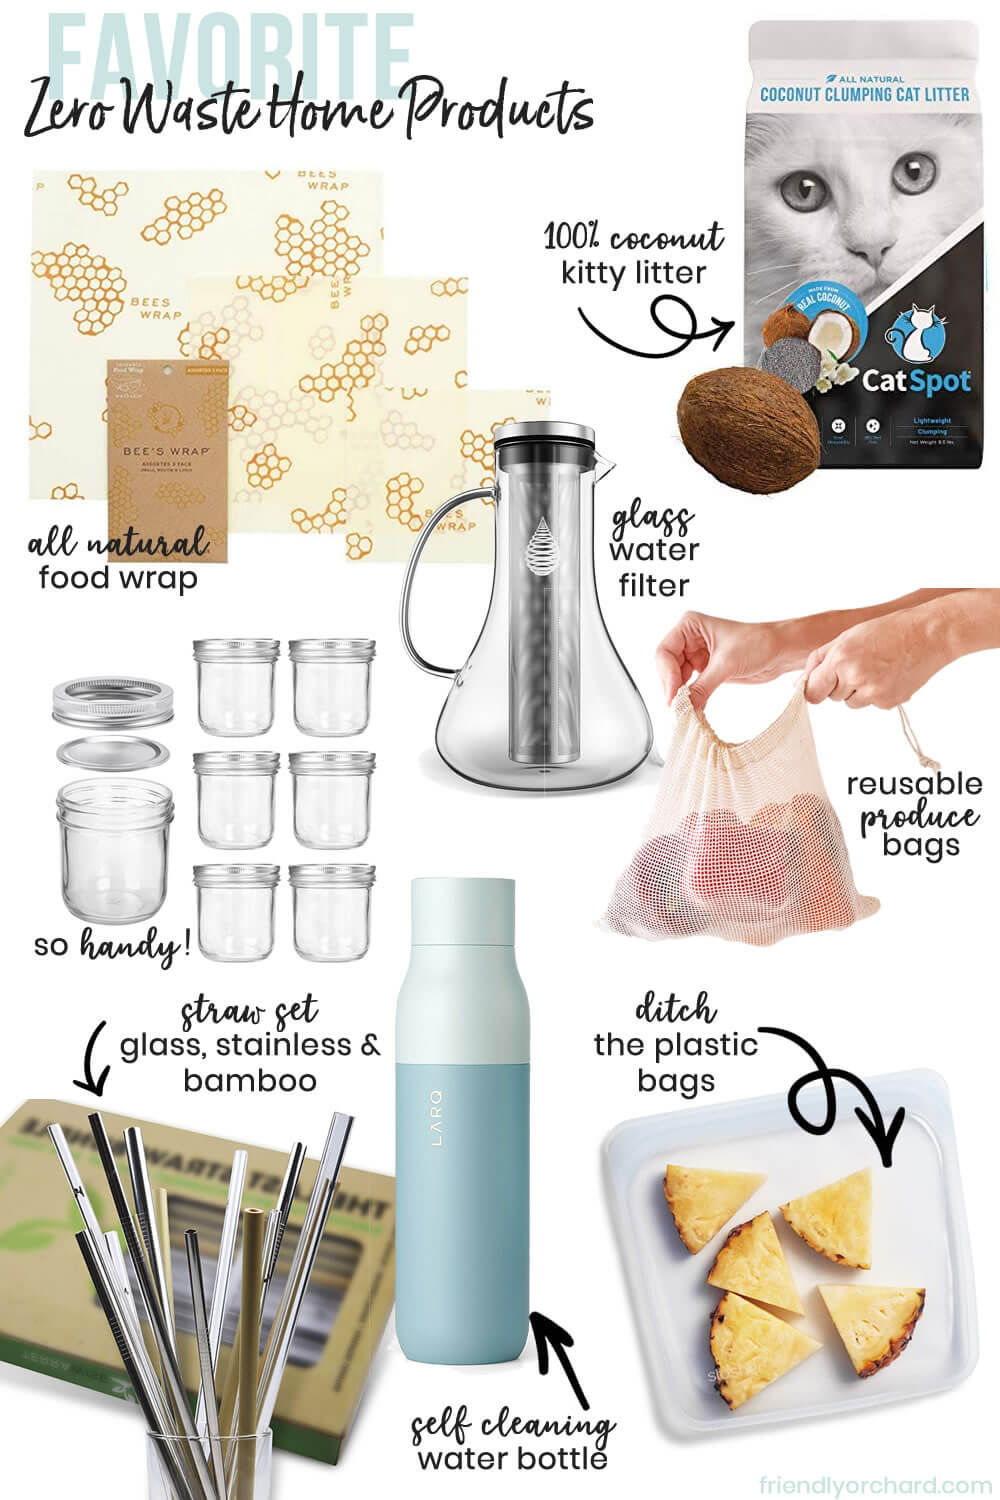 Zero Waste Home Products   Friendly Orchard